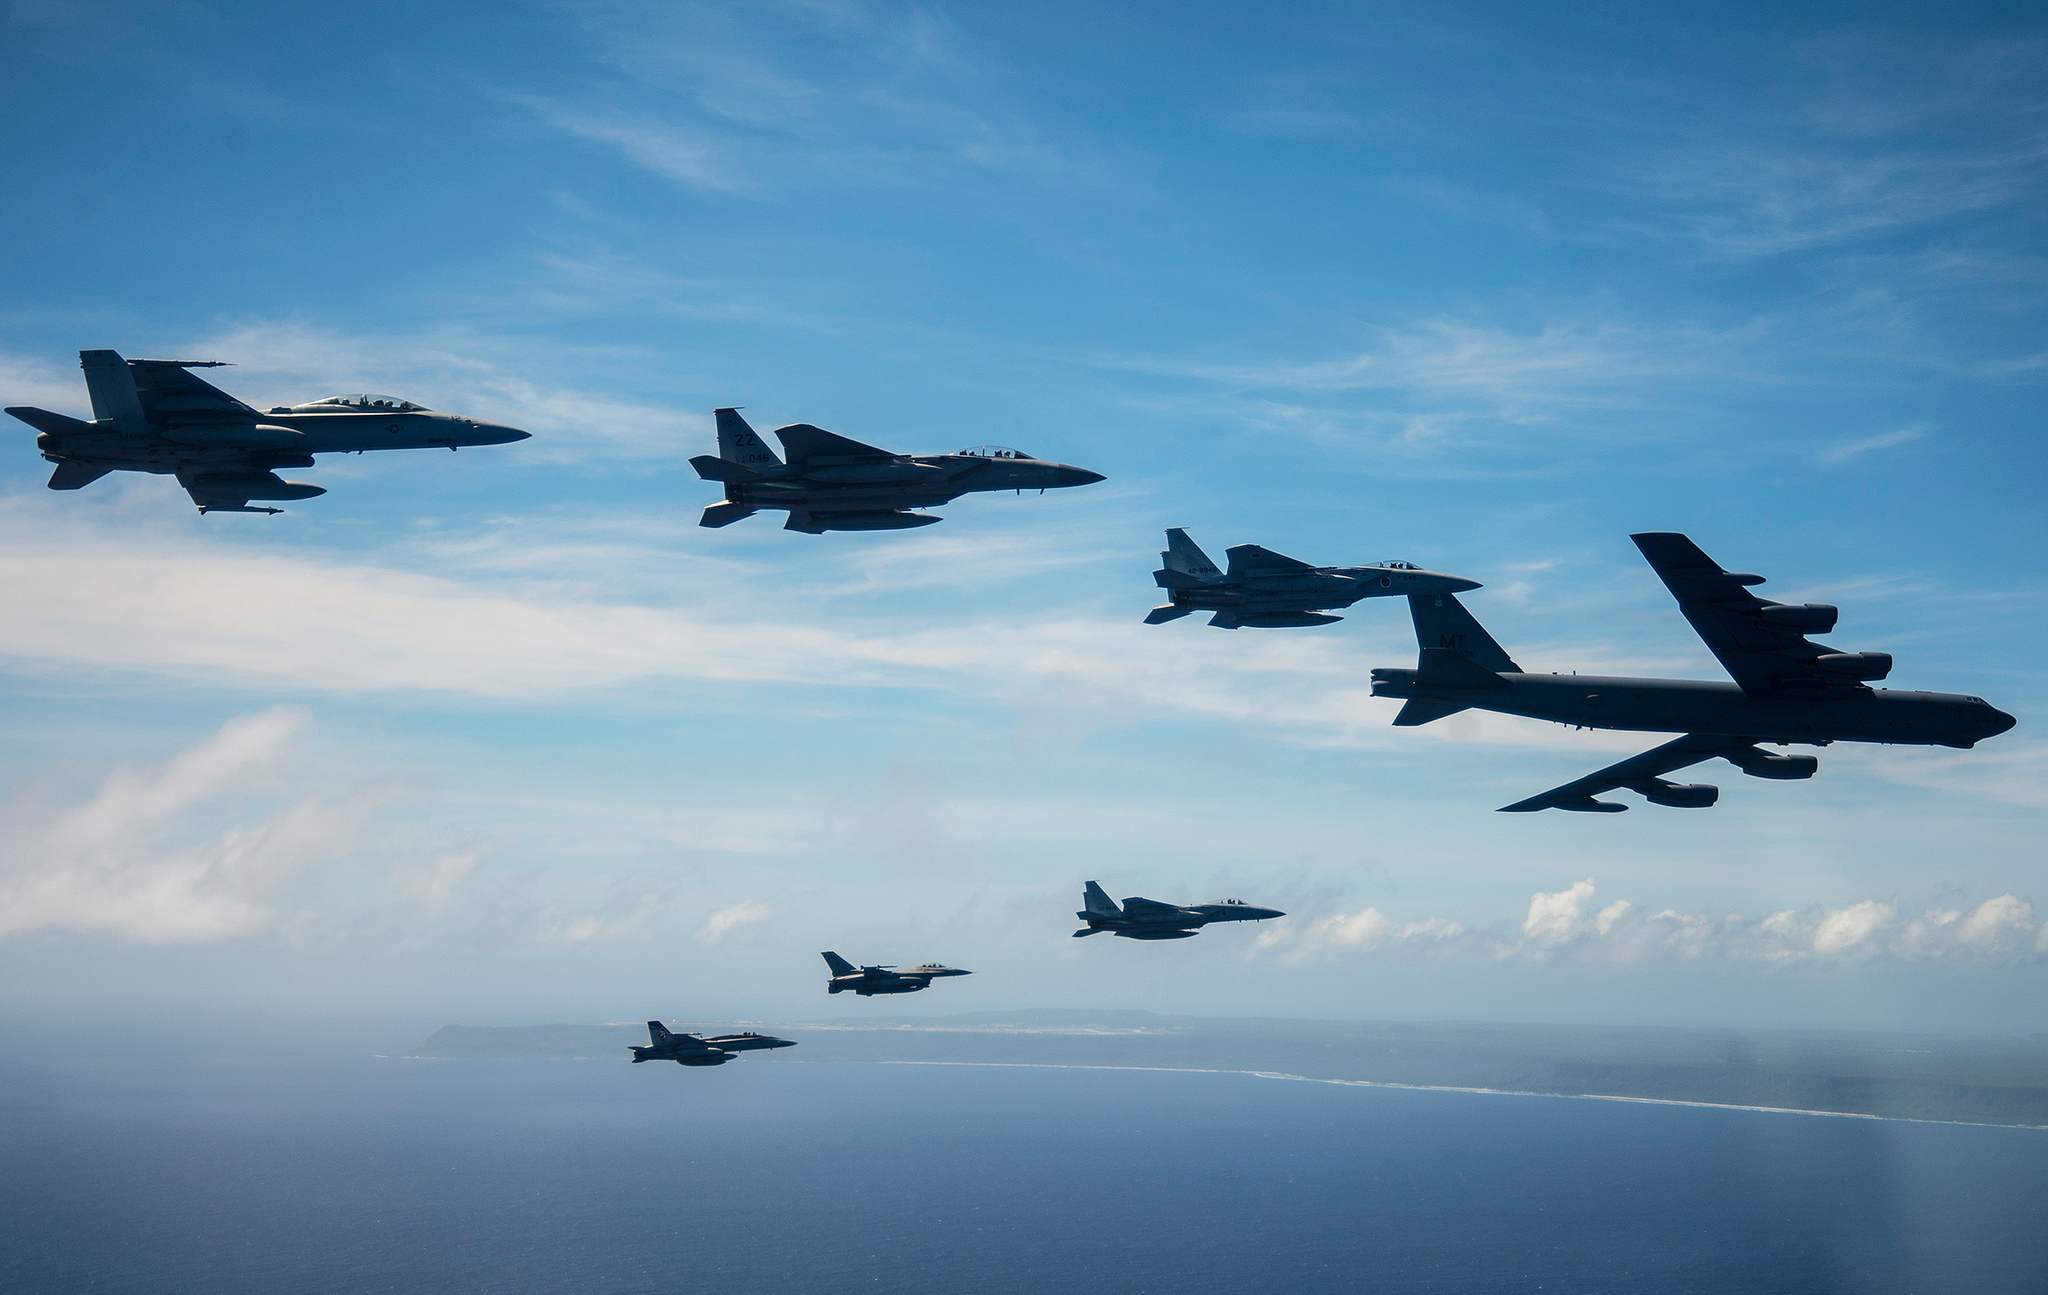 Aircraft from the United States, Australia and Japan participating in COPE North 2019 engage in a large show-of-force formation off the coast of Guam, on March 6, 2019. (Capt. Adam Engelhart/Air Force)